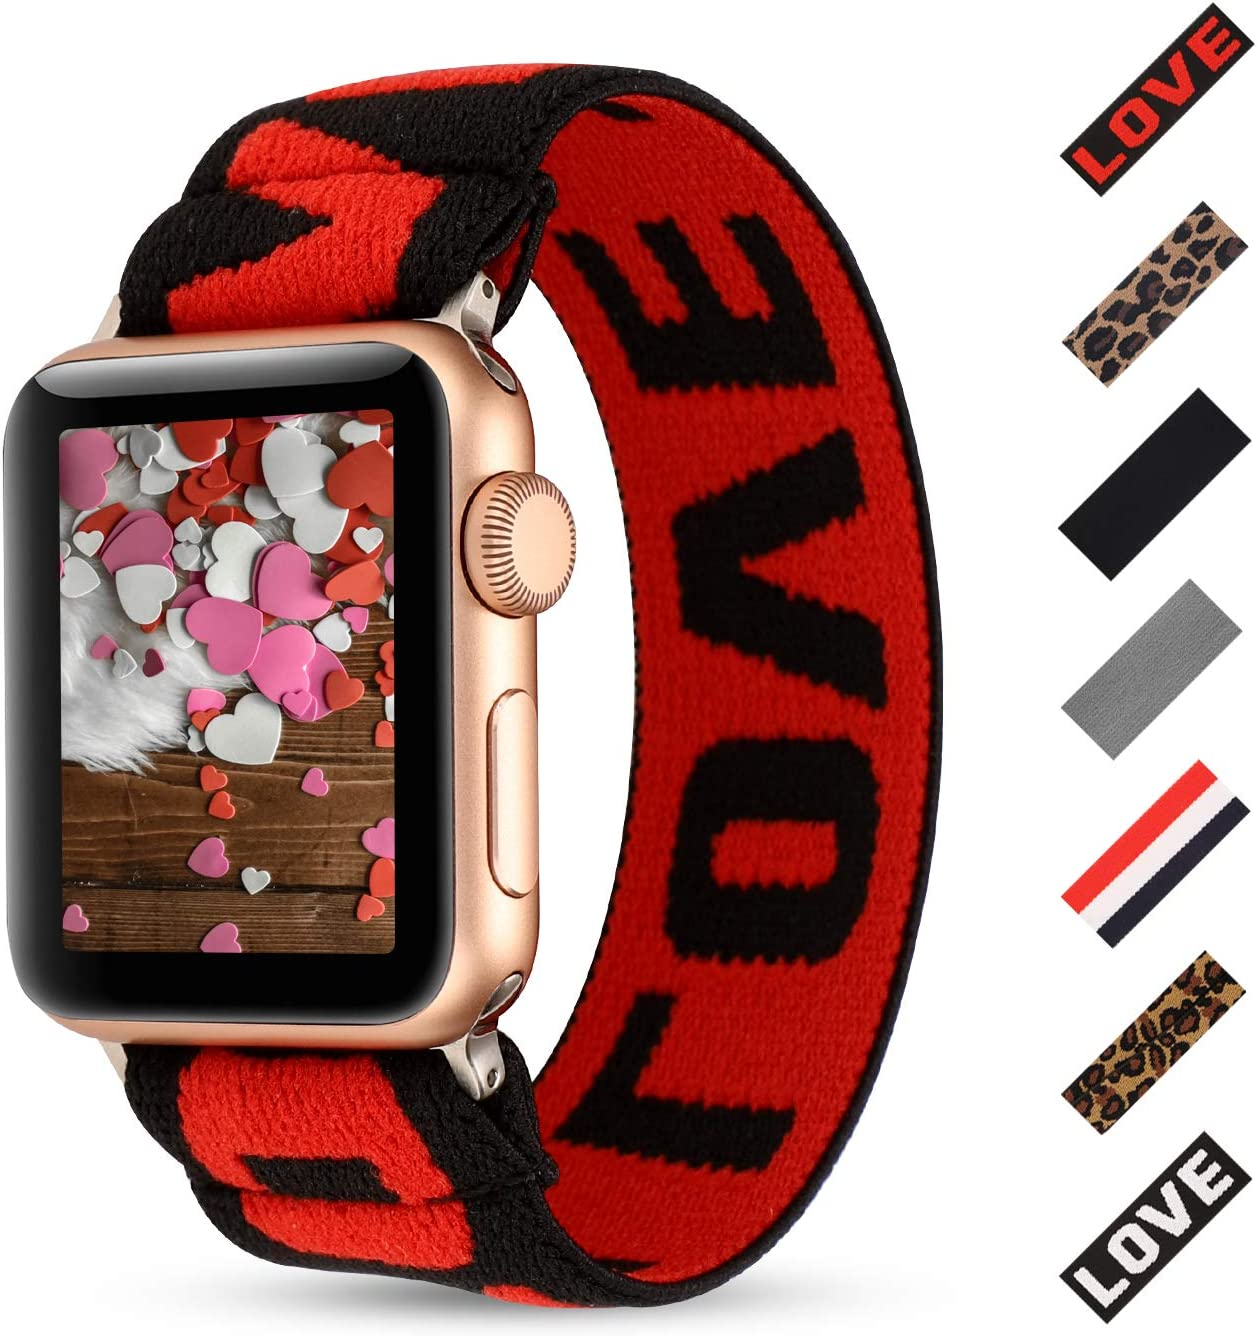 PENKEY Women Elastic Watch Band Compatible for Apple Watch 38mm 40mm 42mm 44mm,Stretchy Wristbands Replacement for IWatch Series 1 2 3 4 5 (Red Black Love, 38/40mm)